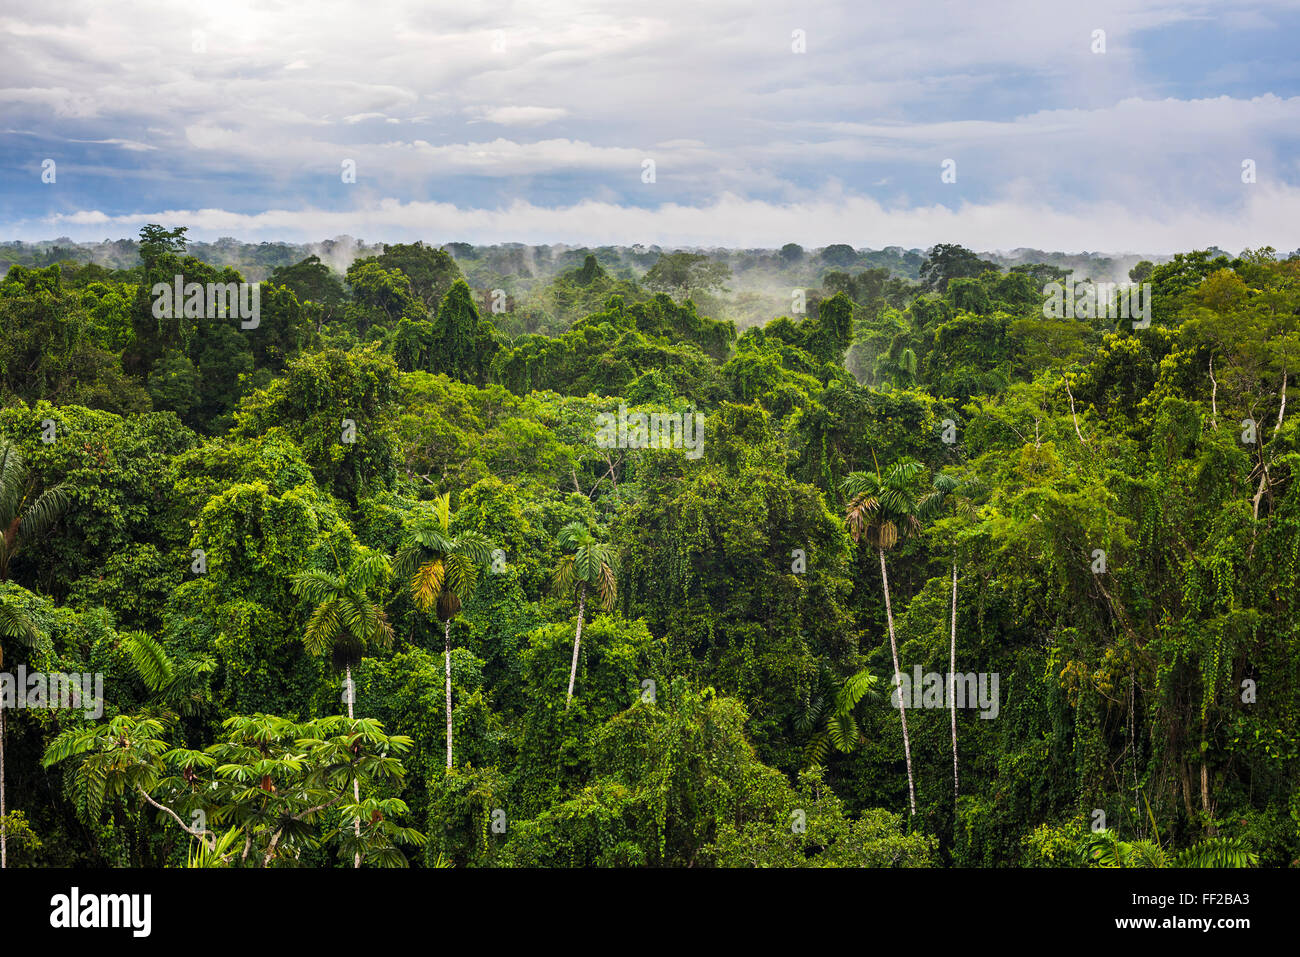 Amazon Rainforest at Sacha RModge, Coca, Ecuador, South America - Stock Image